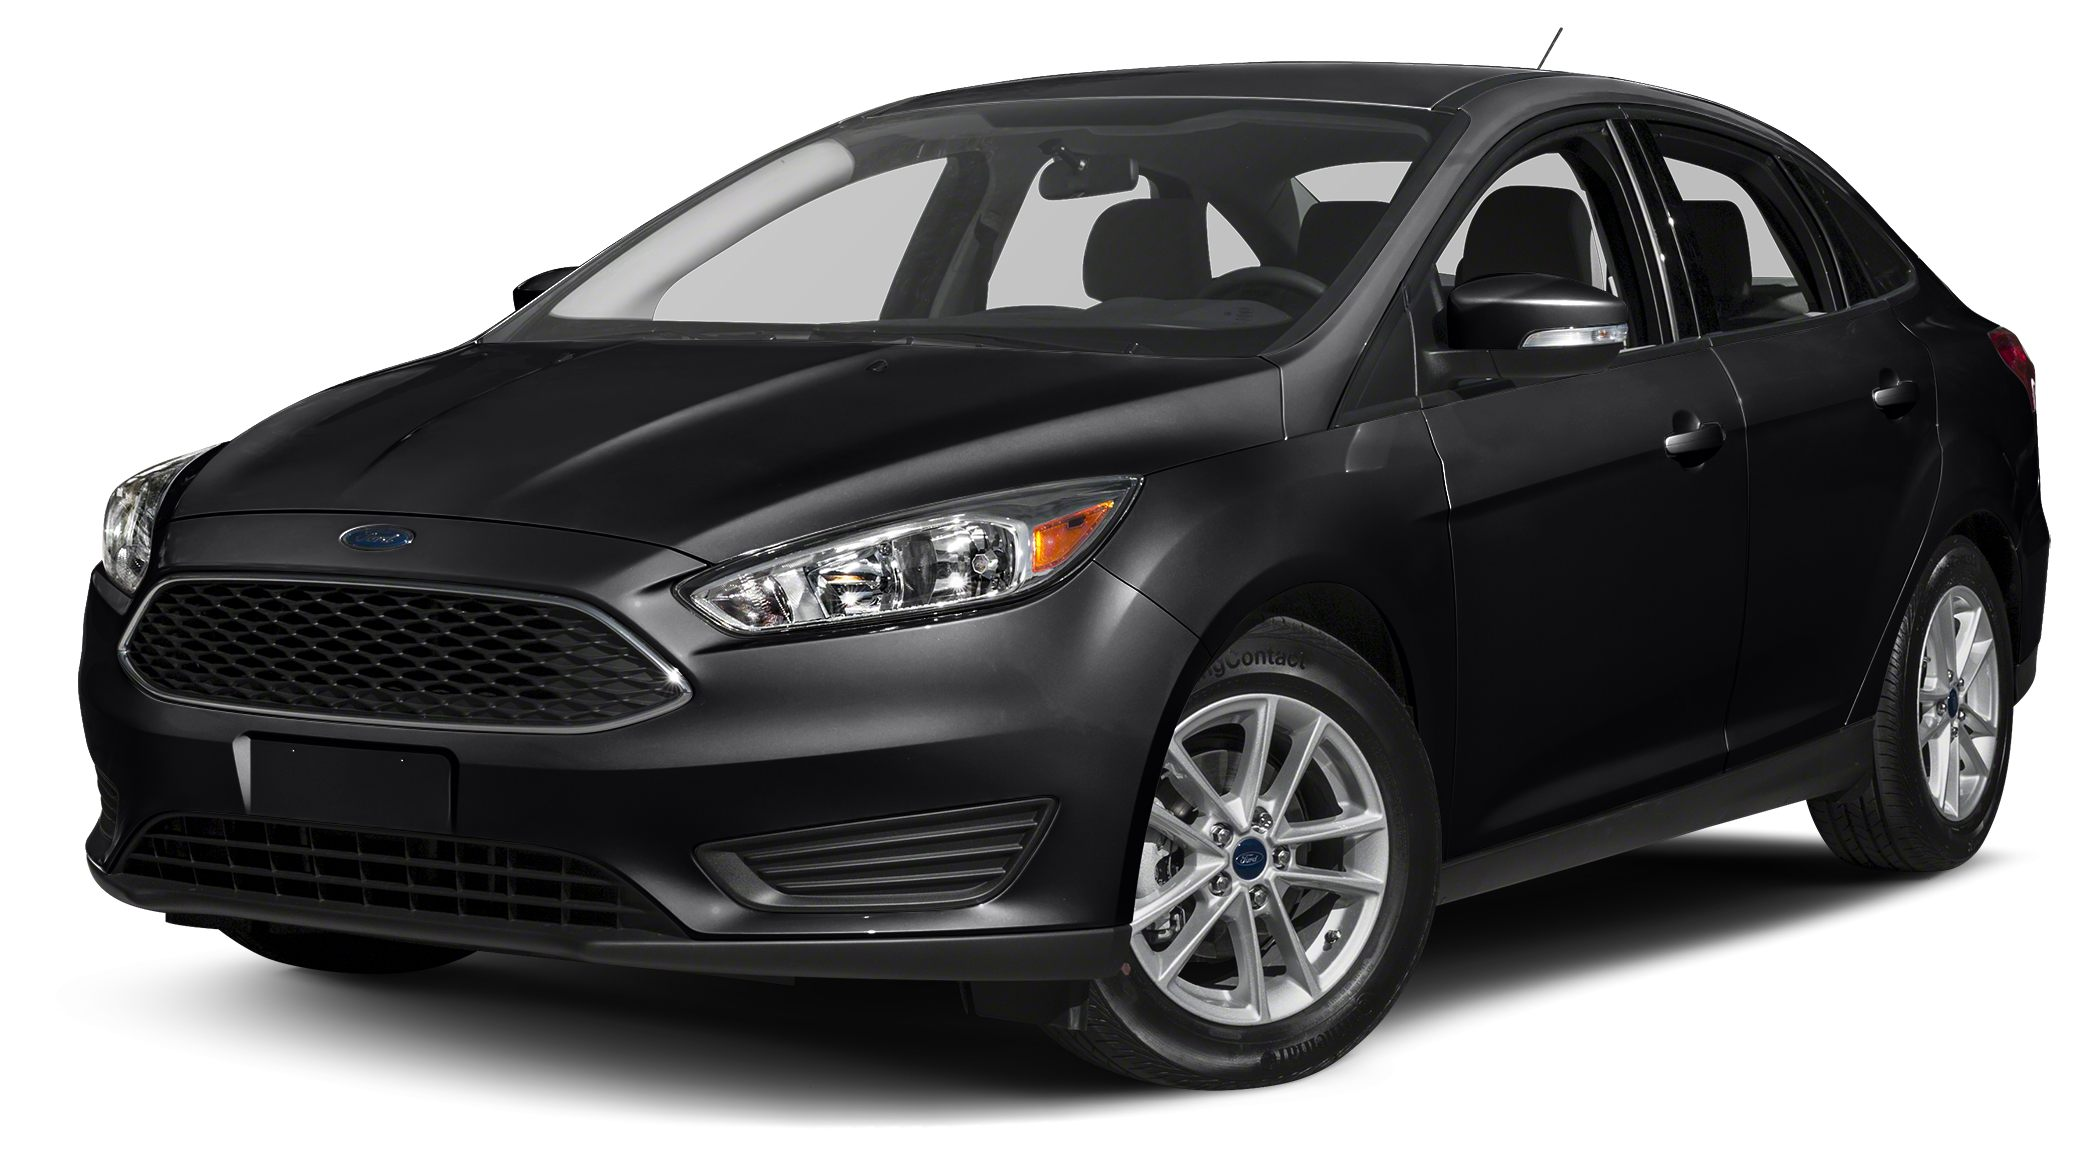 2018 Ford Focus S 2018 Ford Focus S 3826 HighwayCity MPG Price includes 2500 - Retail Custome